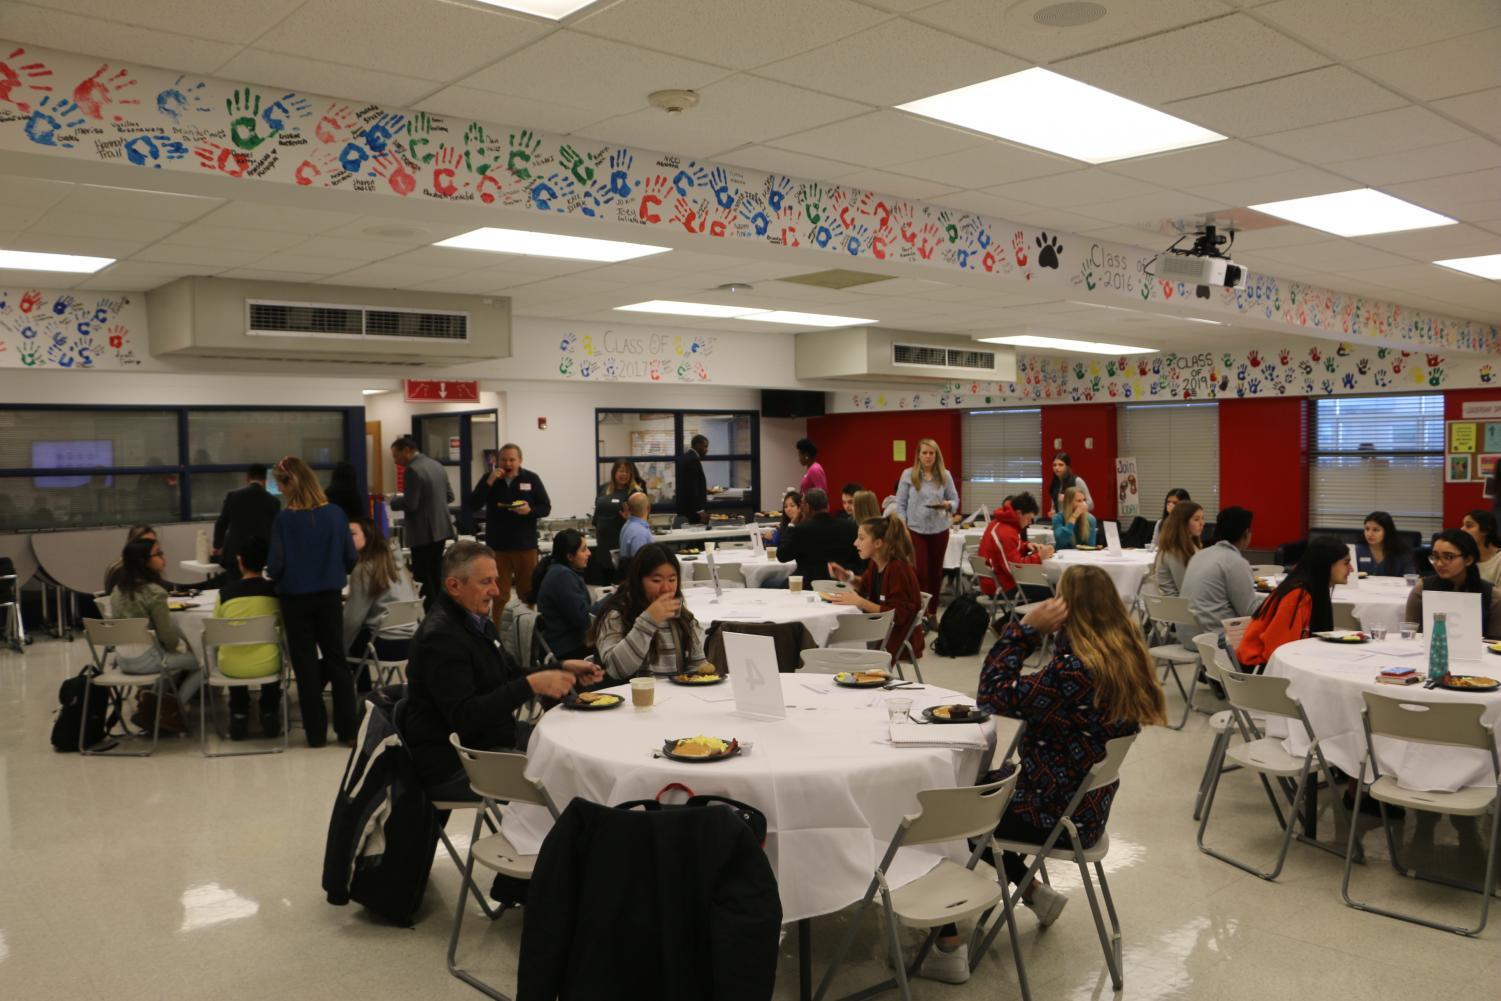 Students, Board Members, and Administrators convene over breakfast to discuss issues at Niles West.